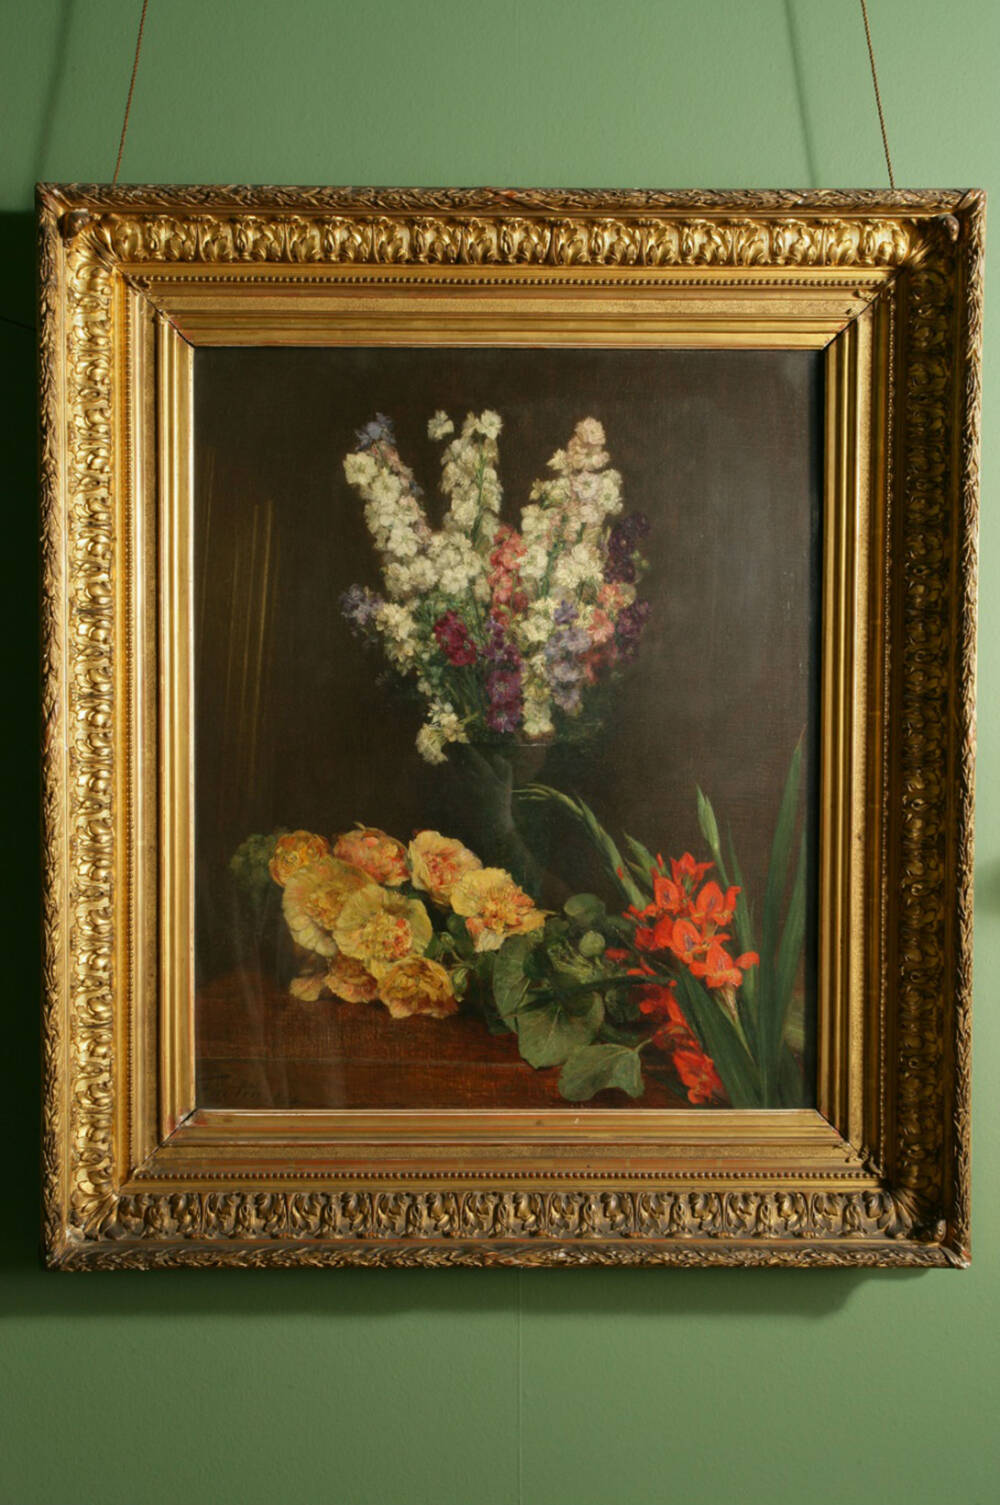 Still-life of flowers by Fantin-Latour in the Library at Hill of Tarvit